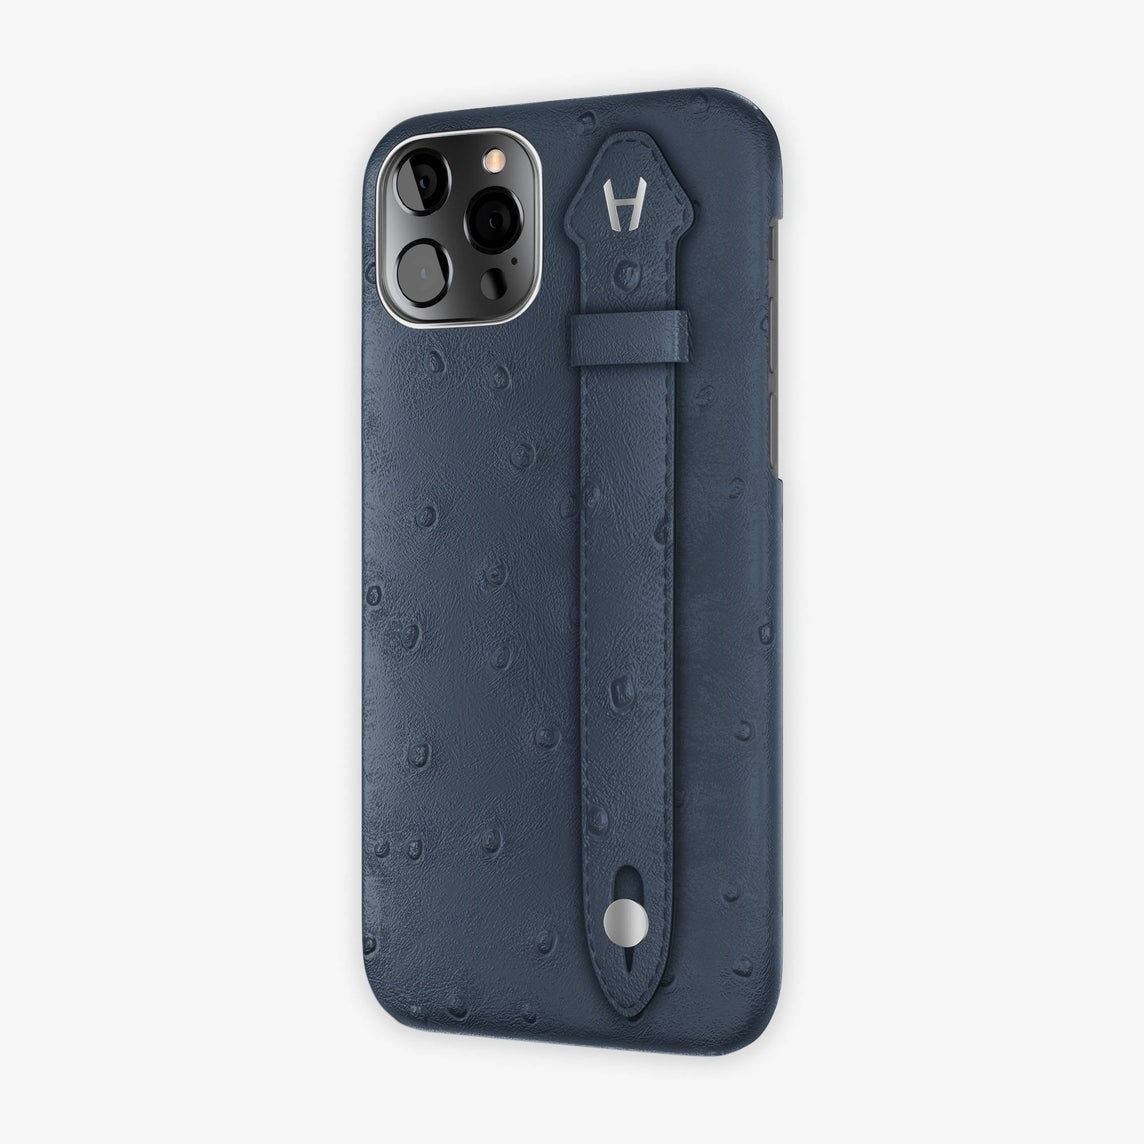 Ostrich Side Finger Case iPhone 12 Pro | Navy Blue/Navy Blue - Stainless Steel